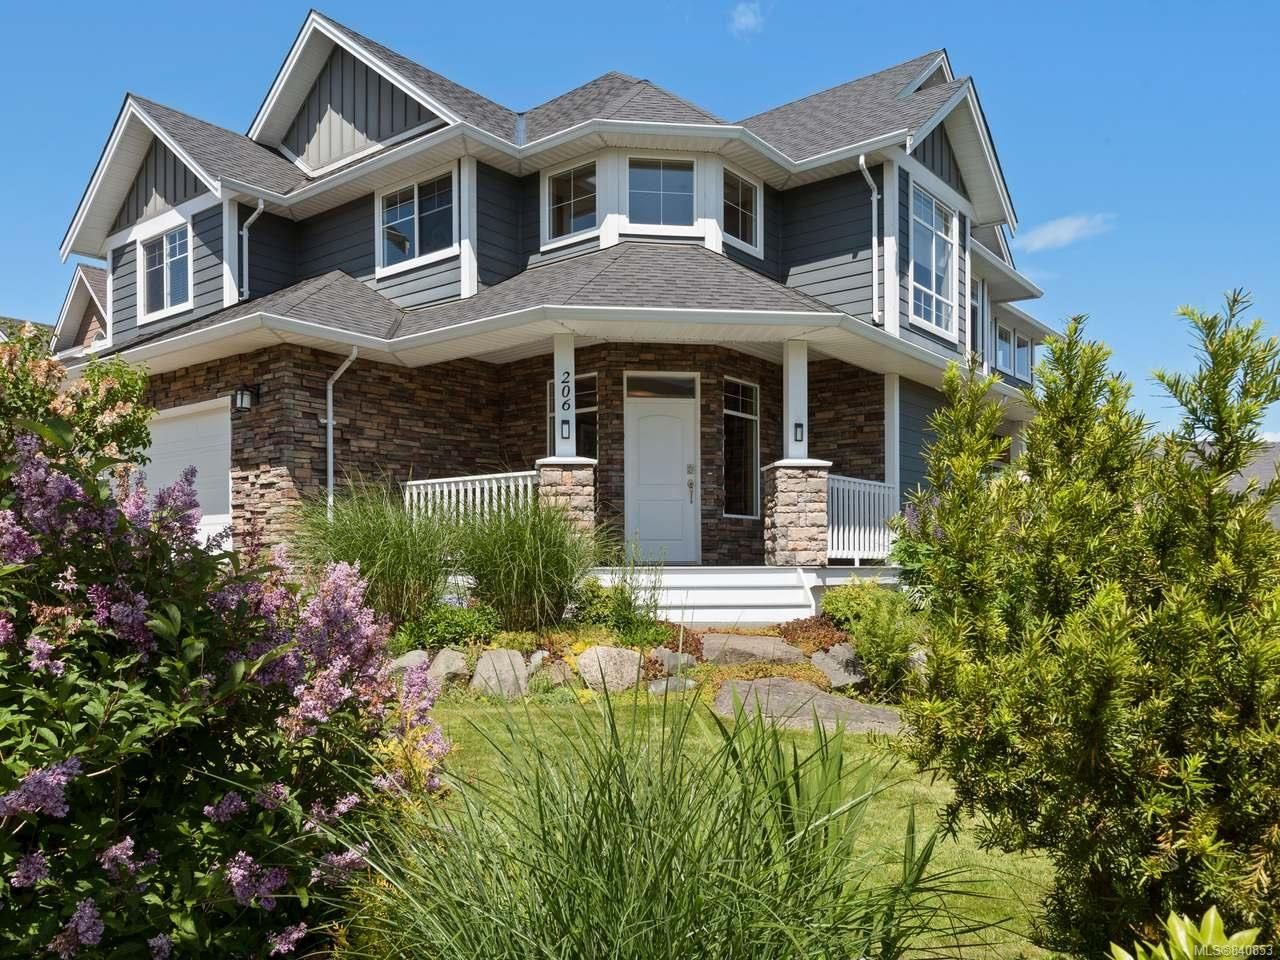 Photo 5: Photos: 206 Marie Pl in CAMPBELL RIVER: CR Willow Point House for sale (Campbell River)  : MLS®# 840853